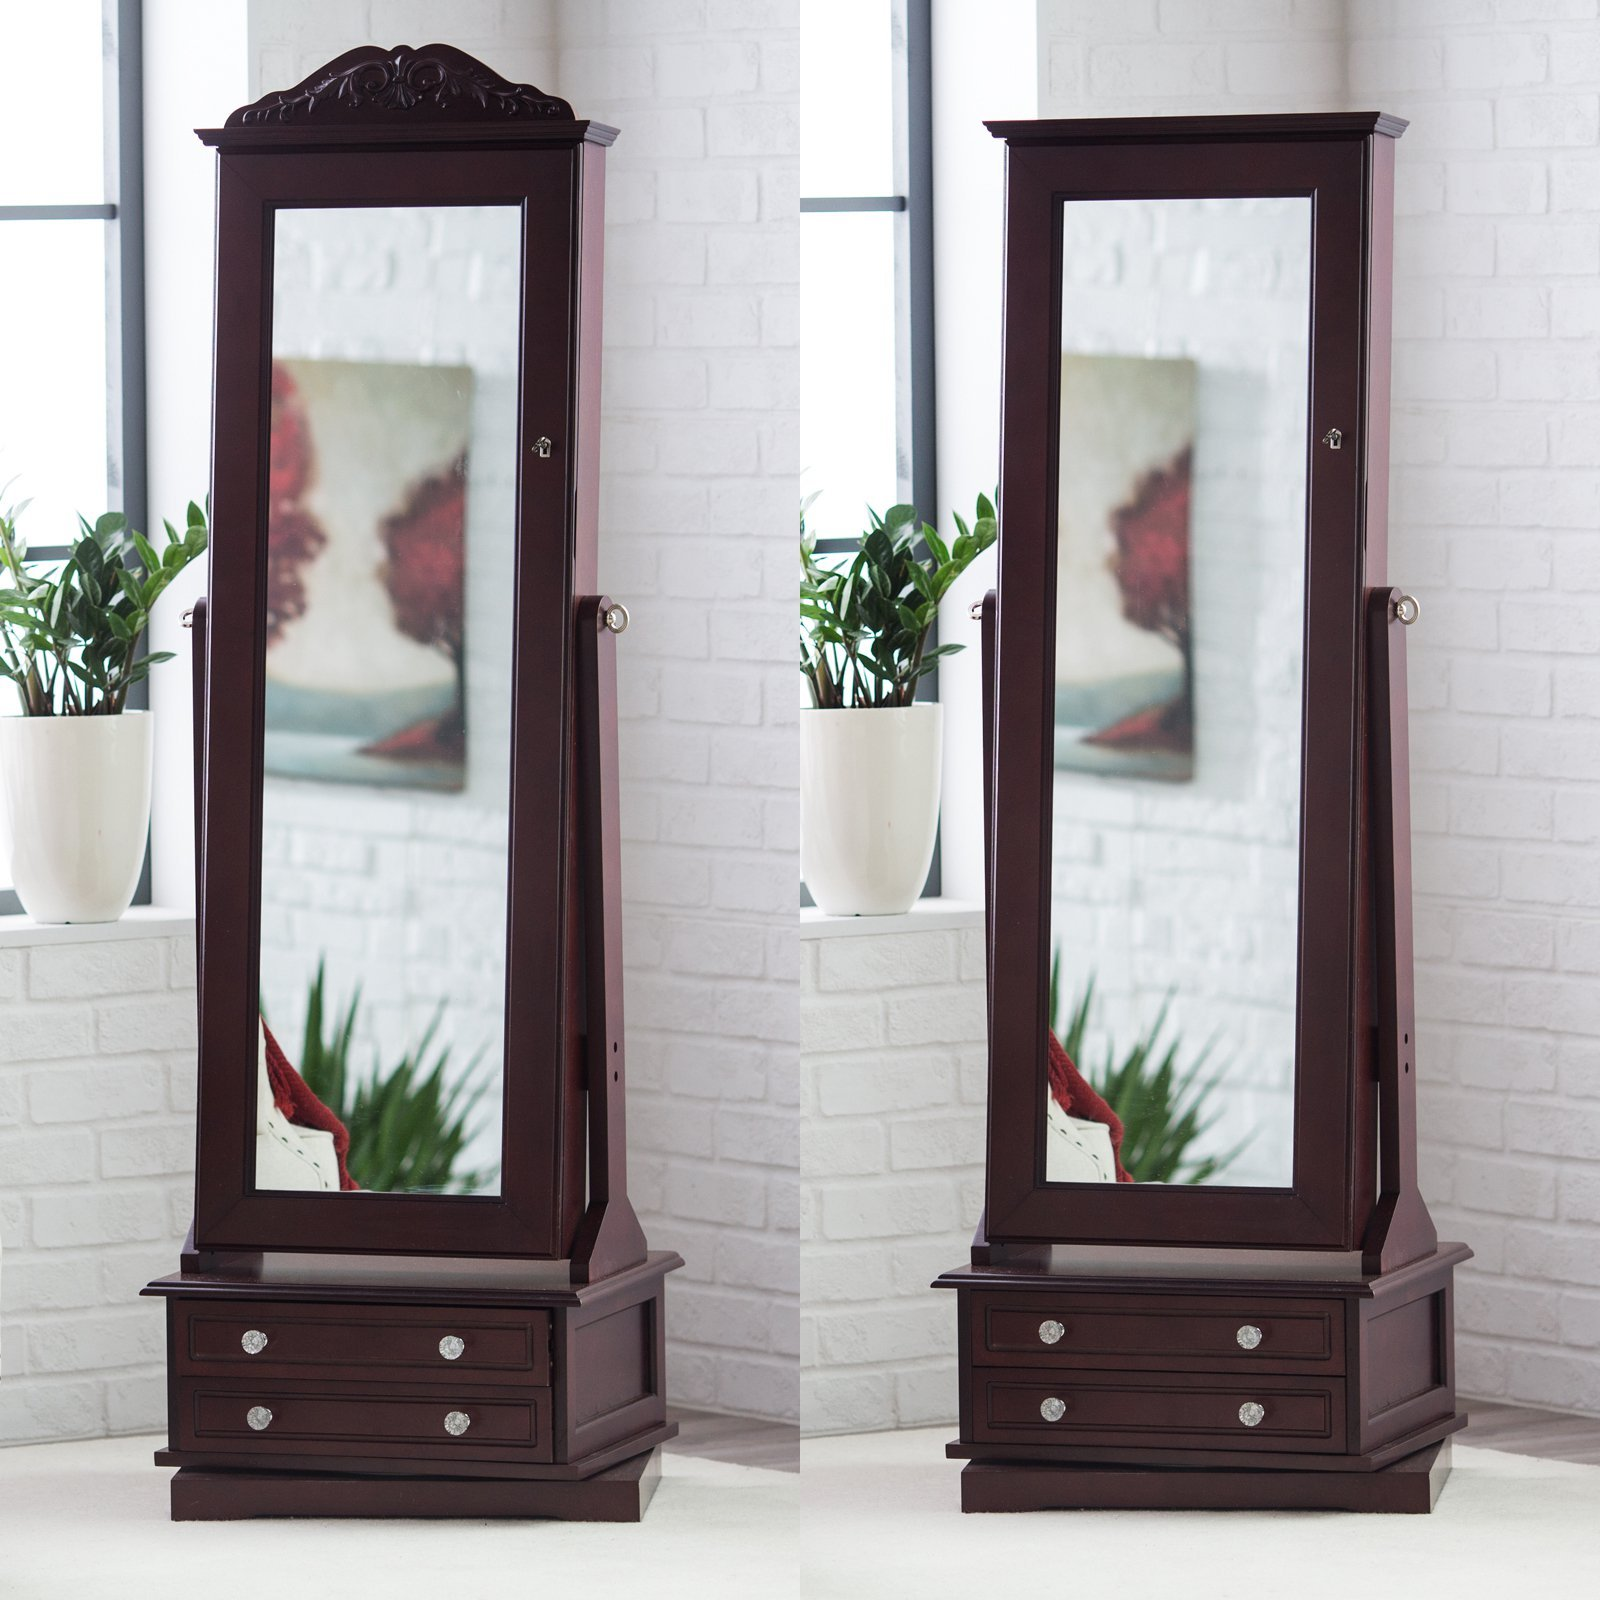 cheval mirror jewelry armoire swivel floor standing. Black Bedroom Furniture Sets. Home Design Ideas